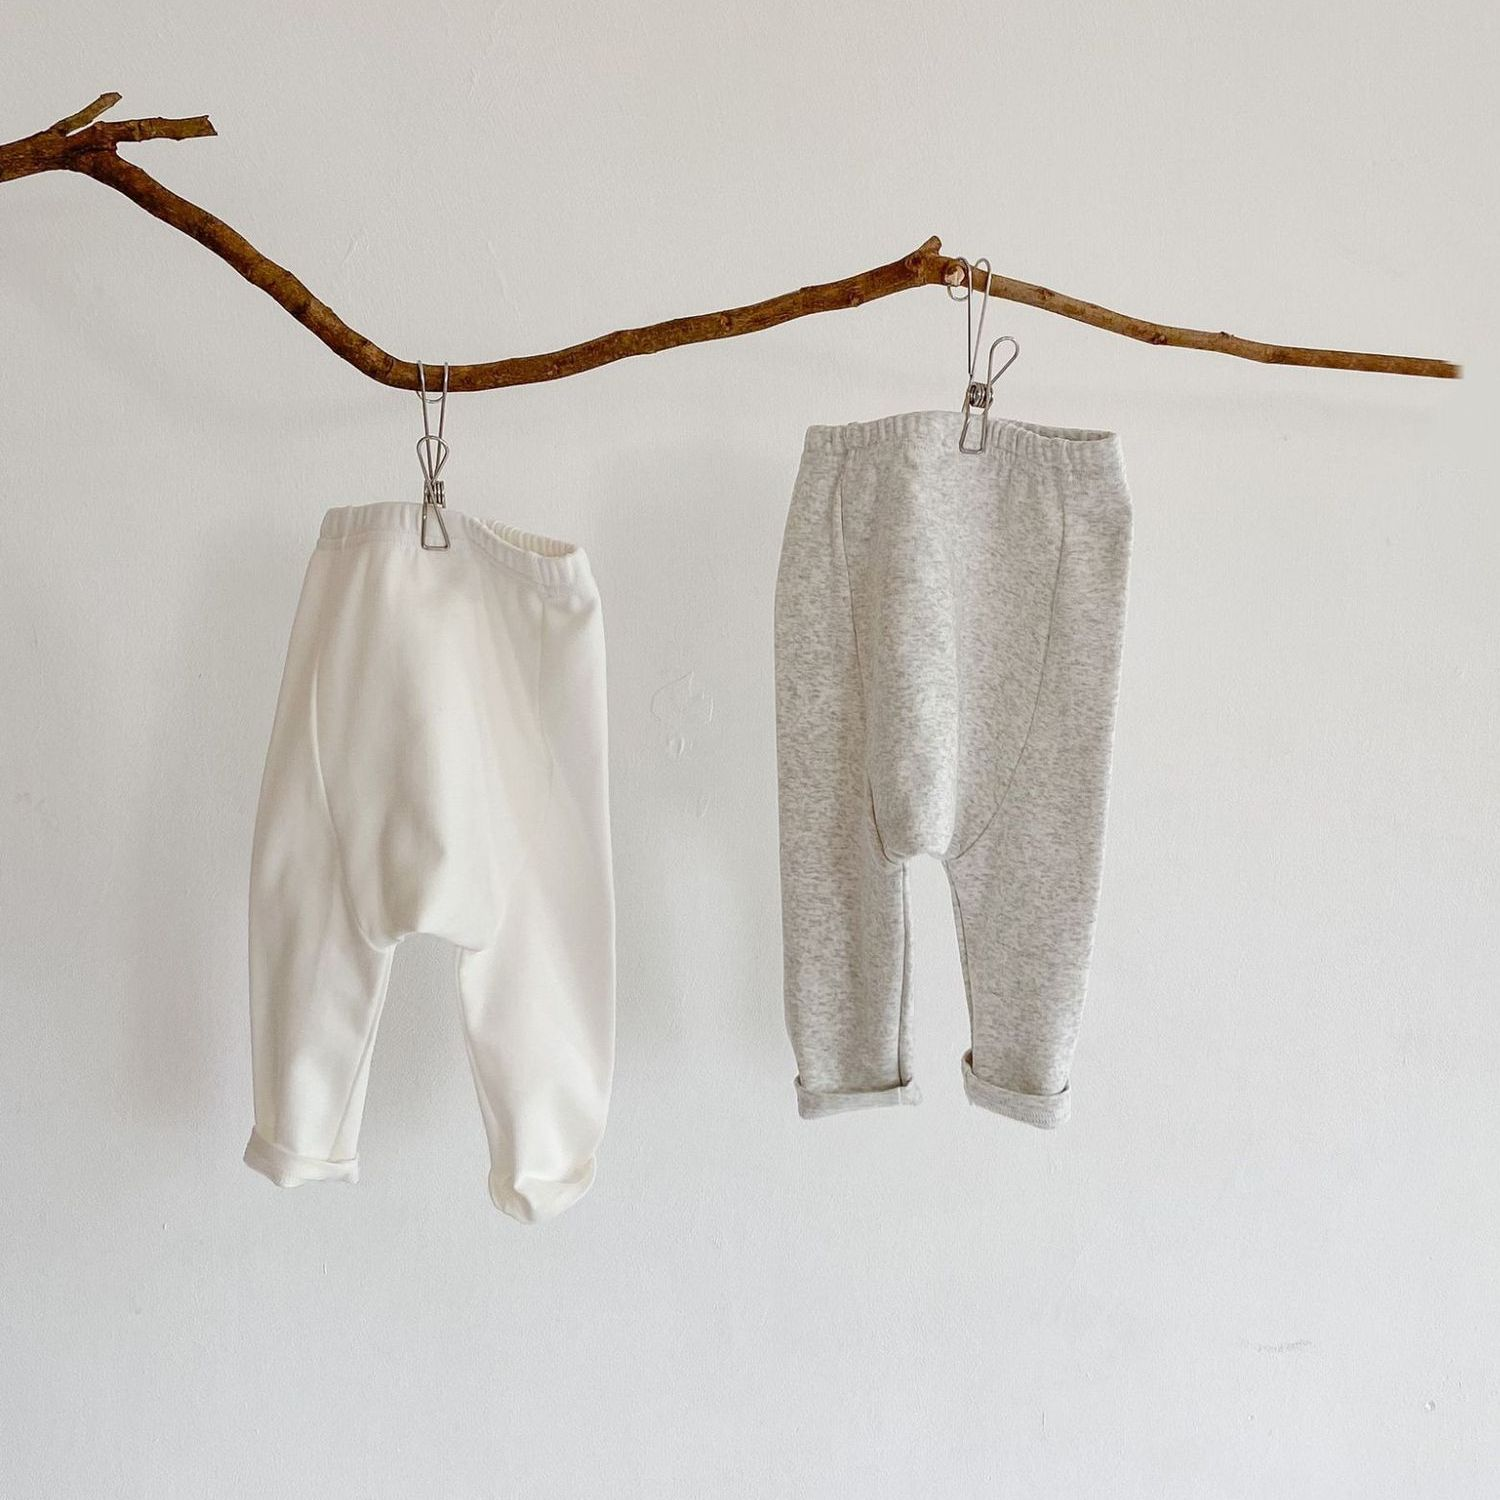 cotton soft girl baby pants white spring autumn clothes for newborns warm baby boy pants Leggings for girls baby clothes